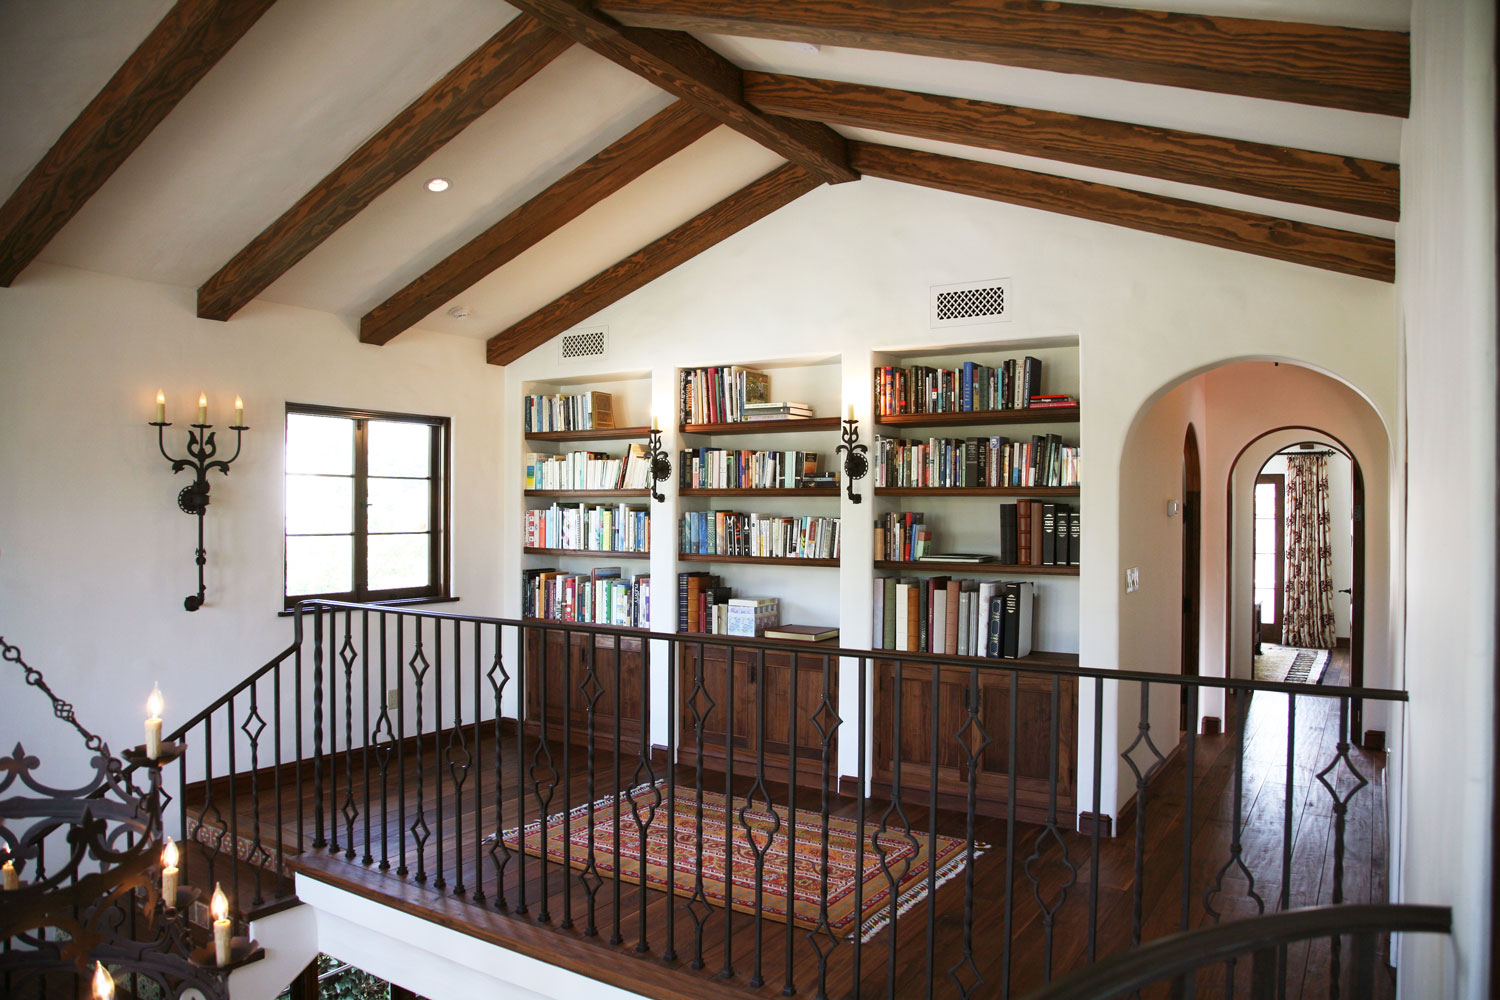 10-spanish-style-staircase-landing-beamed-ceiling-built-in-bookcases-gary-drake-general-contractor.jpg